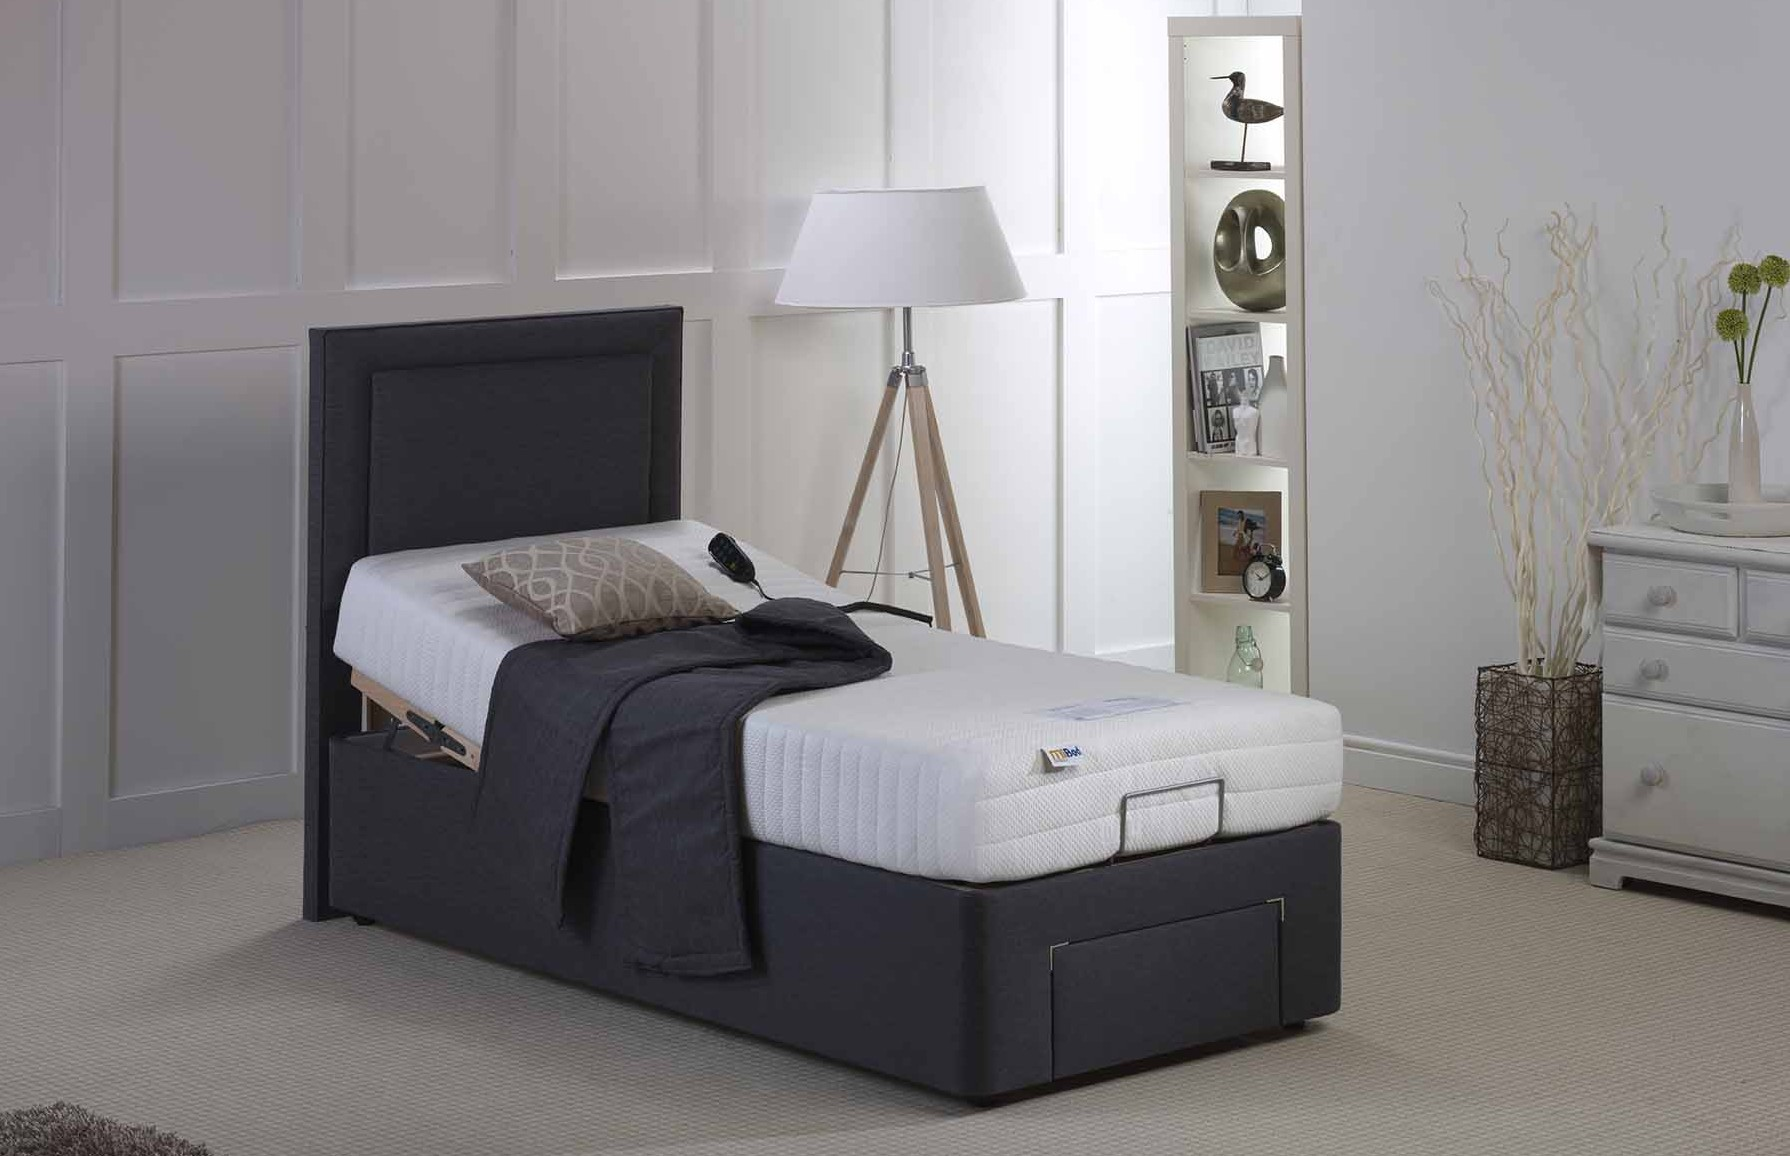 Adjustable Beds In Belfast : Mibed verity electric adjustable bed